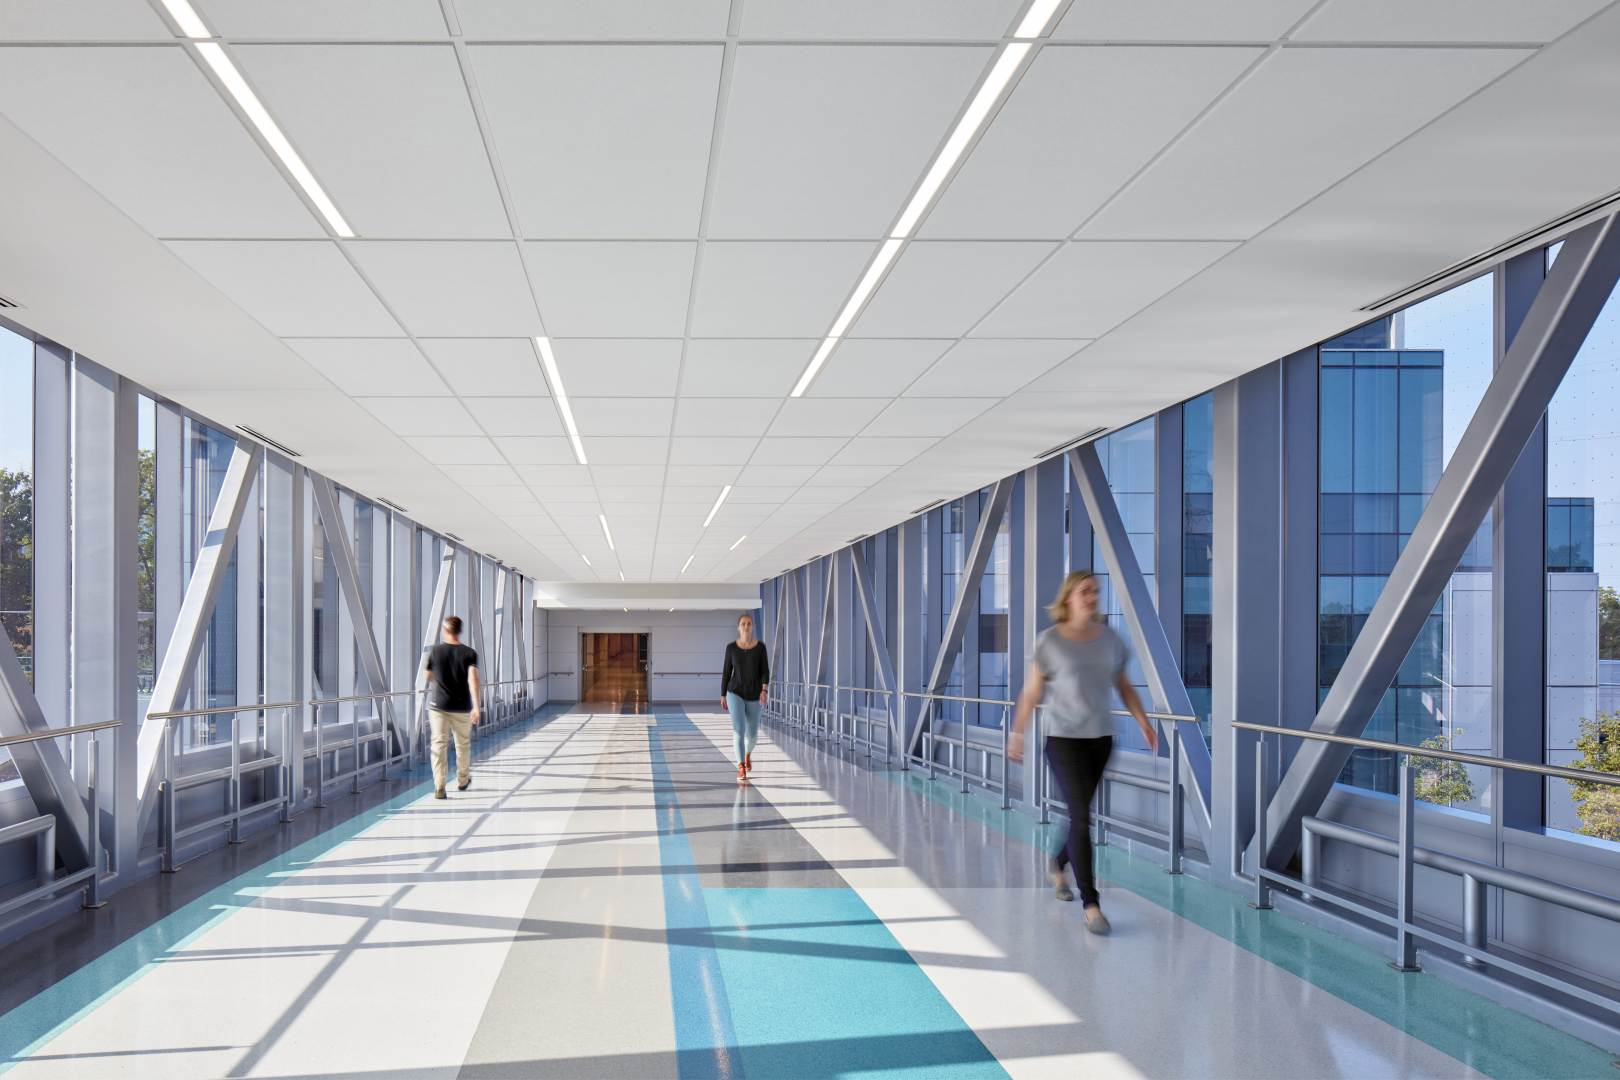 Joseph Brant Hospital Redevelopment and Expansion